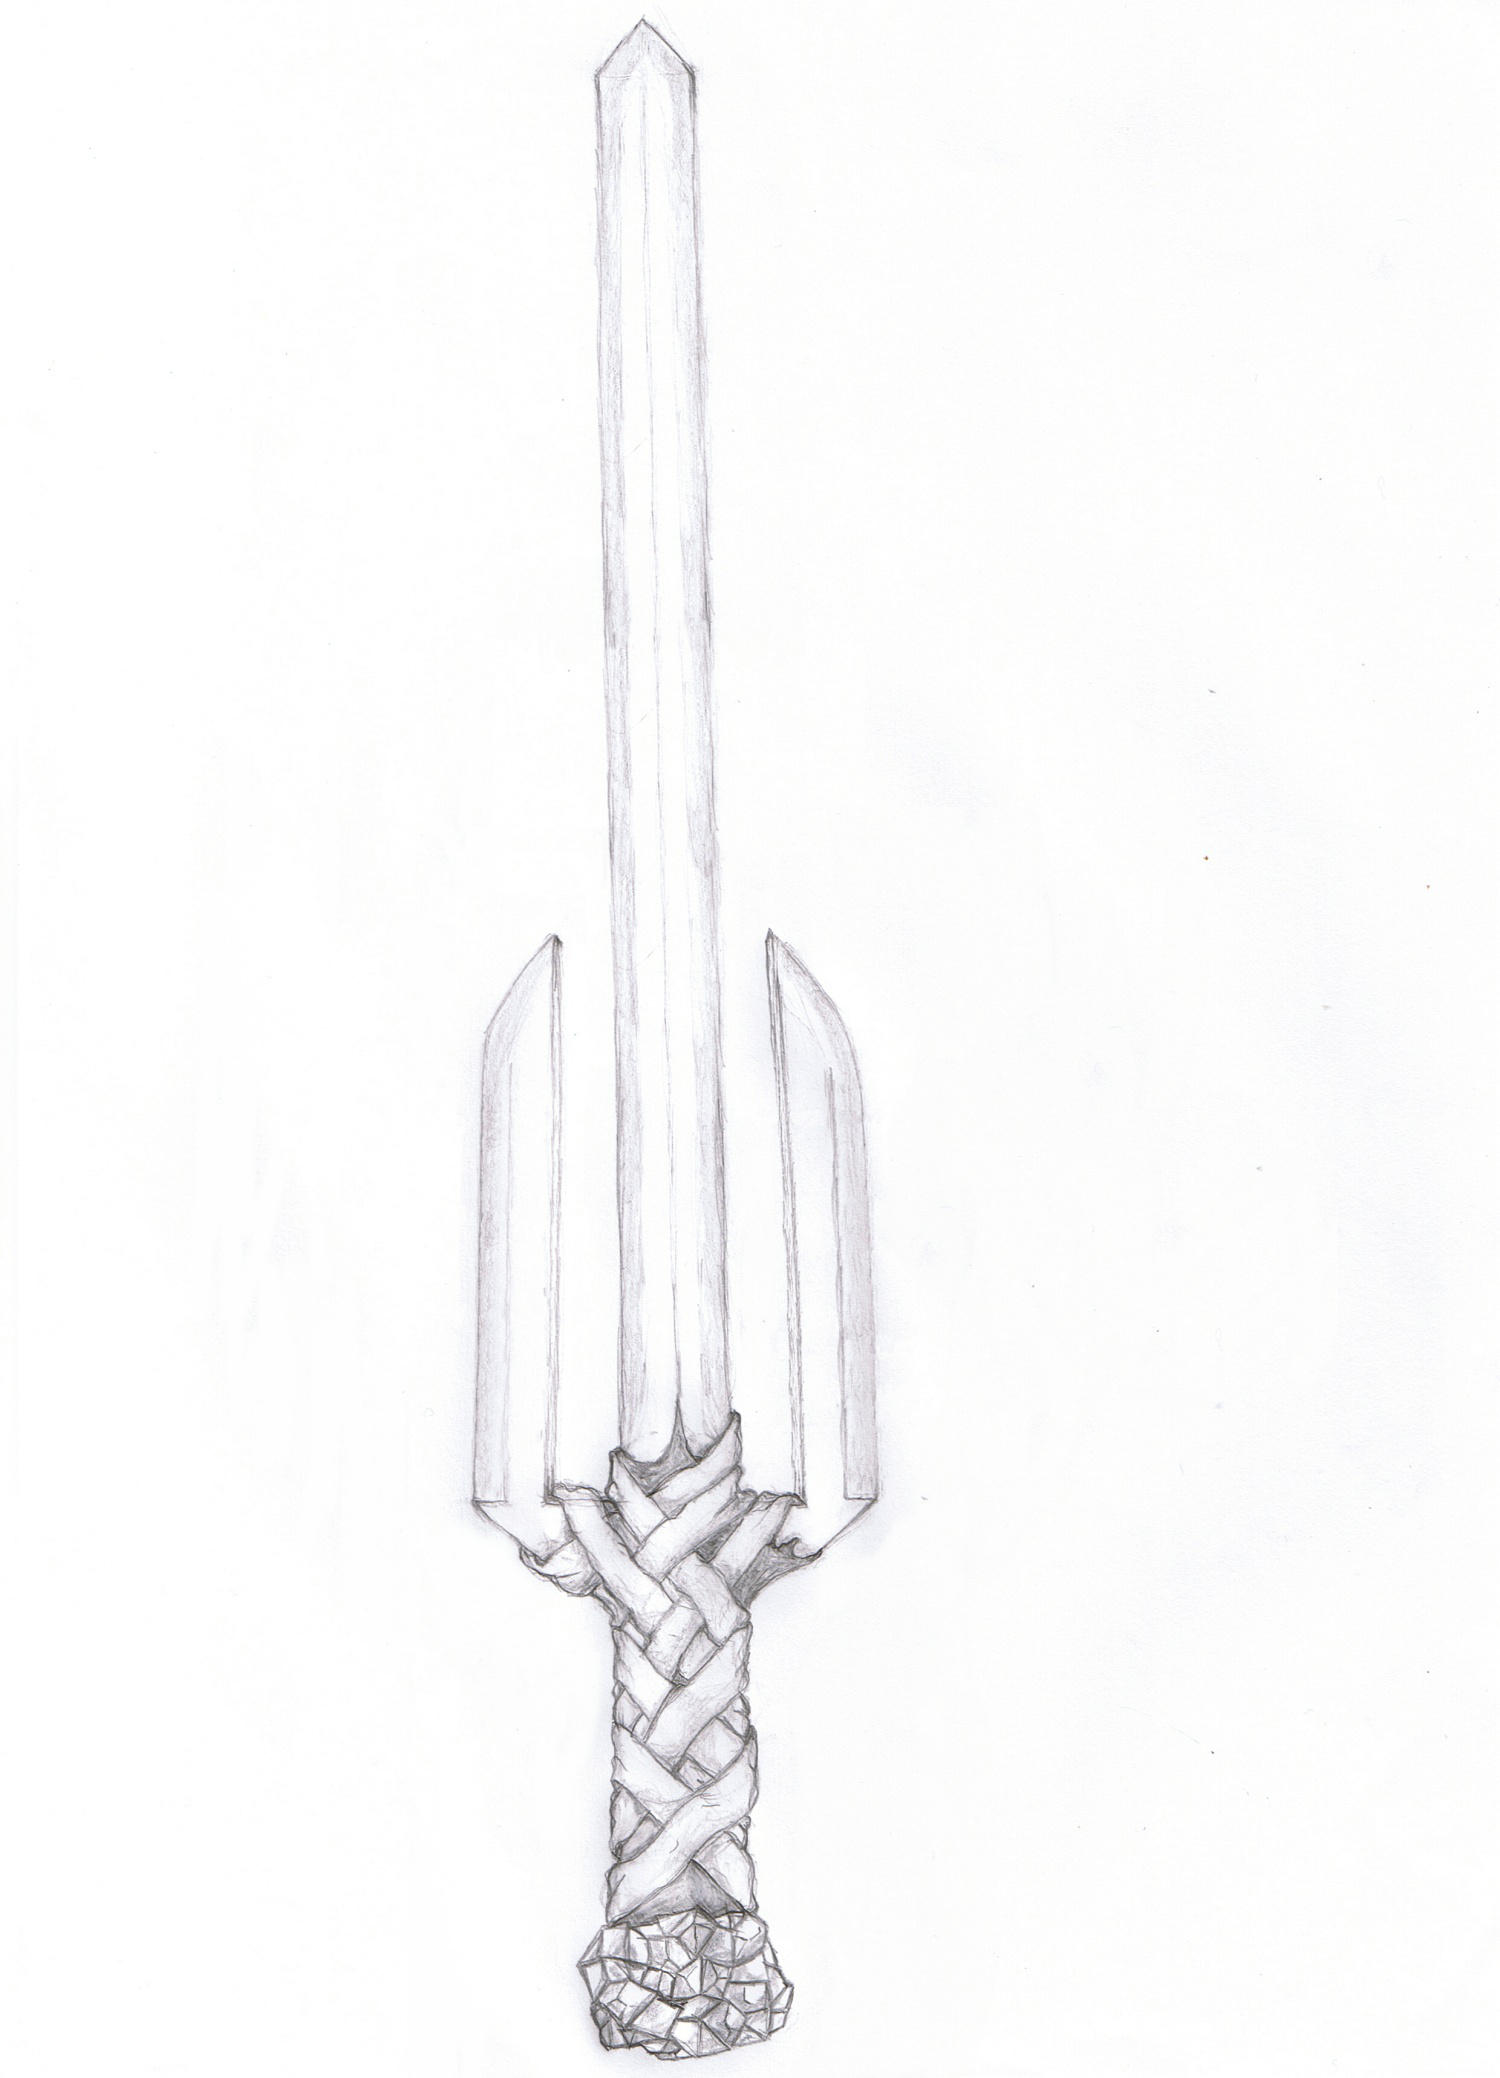 Sword by SubLeLumiere